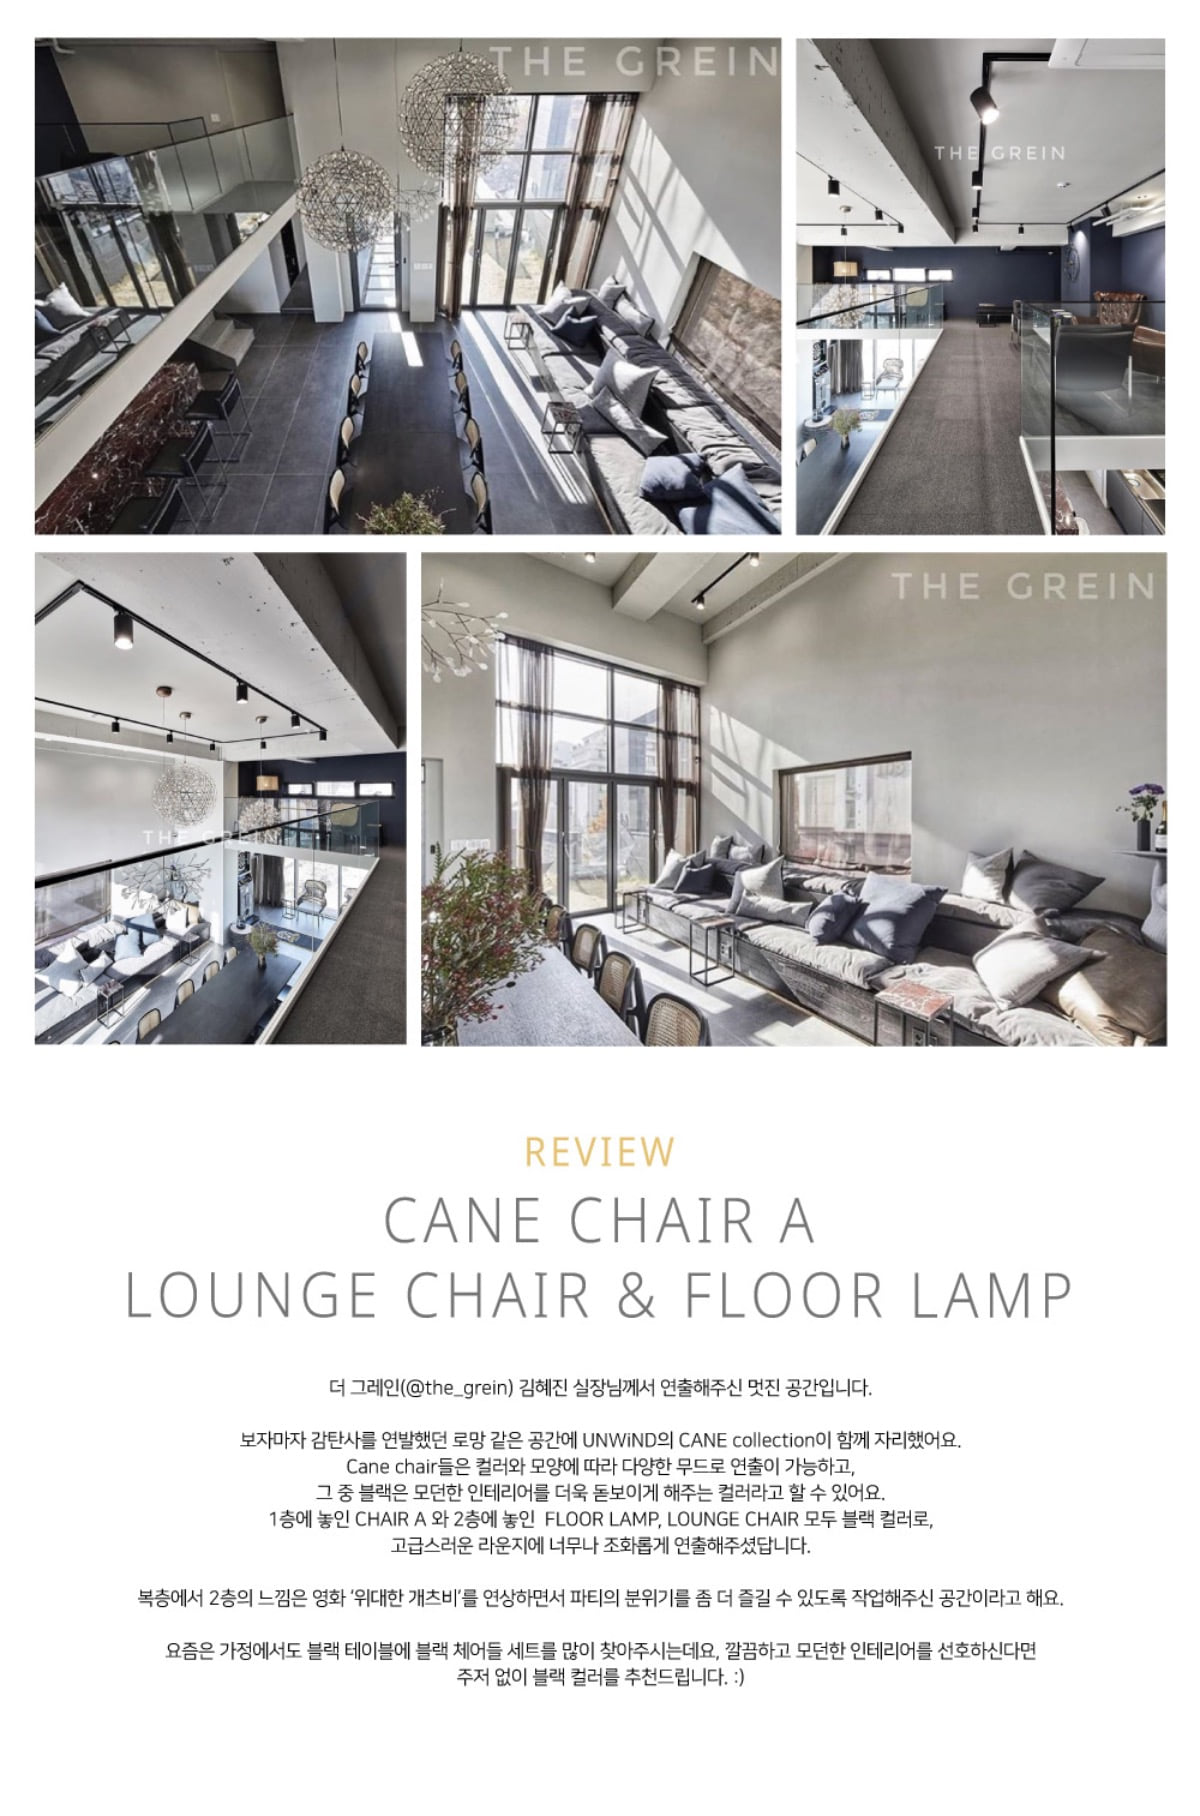 CANE chair A & lounge chair & floor lamp